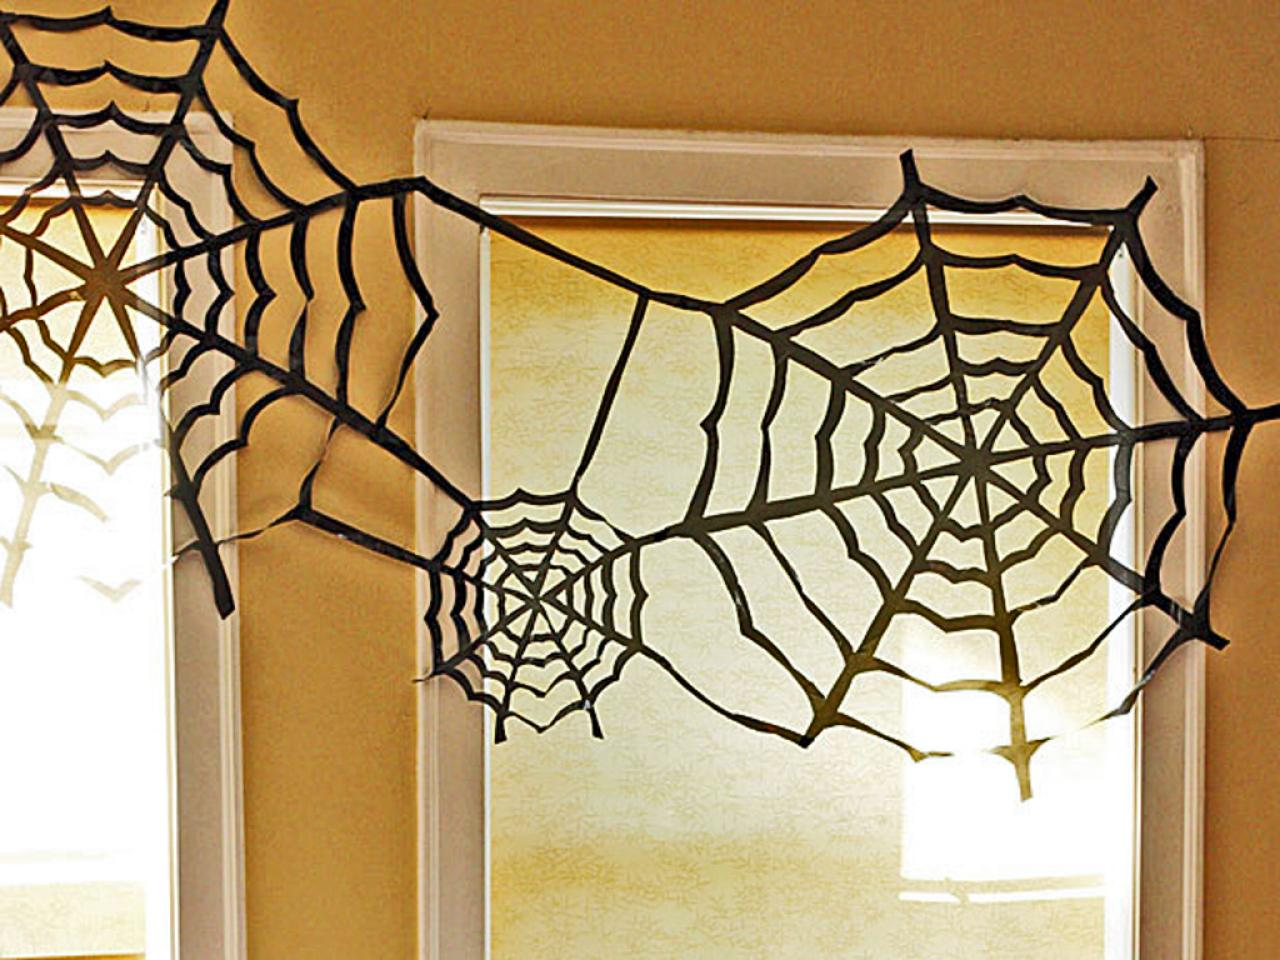 original_Jessica-Jones-trashbag-spider-web_Crop.jpg.rend.hgtvcom.1280.960